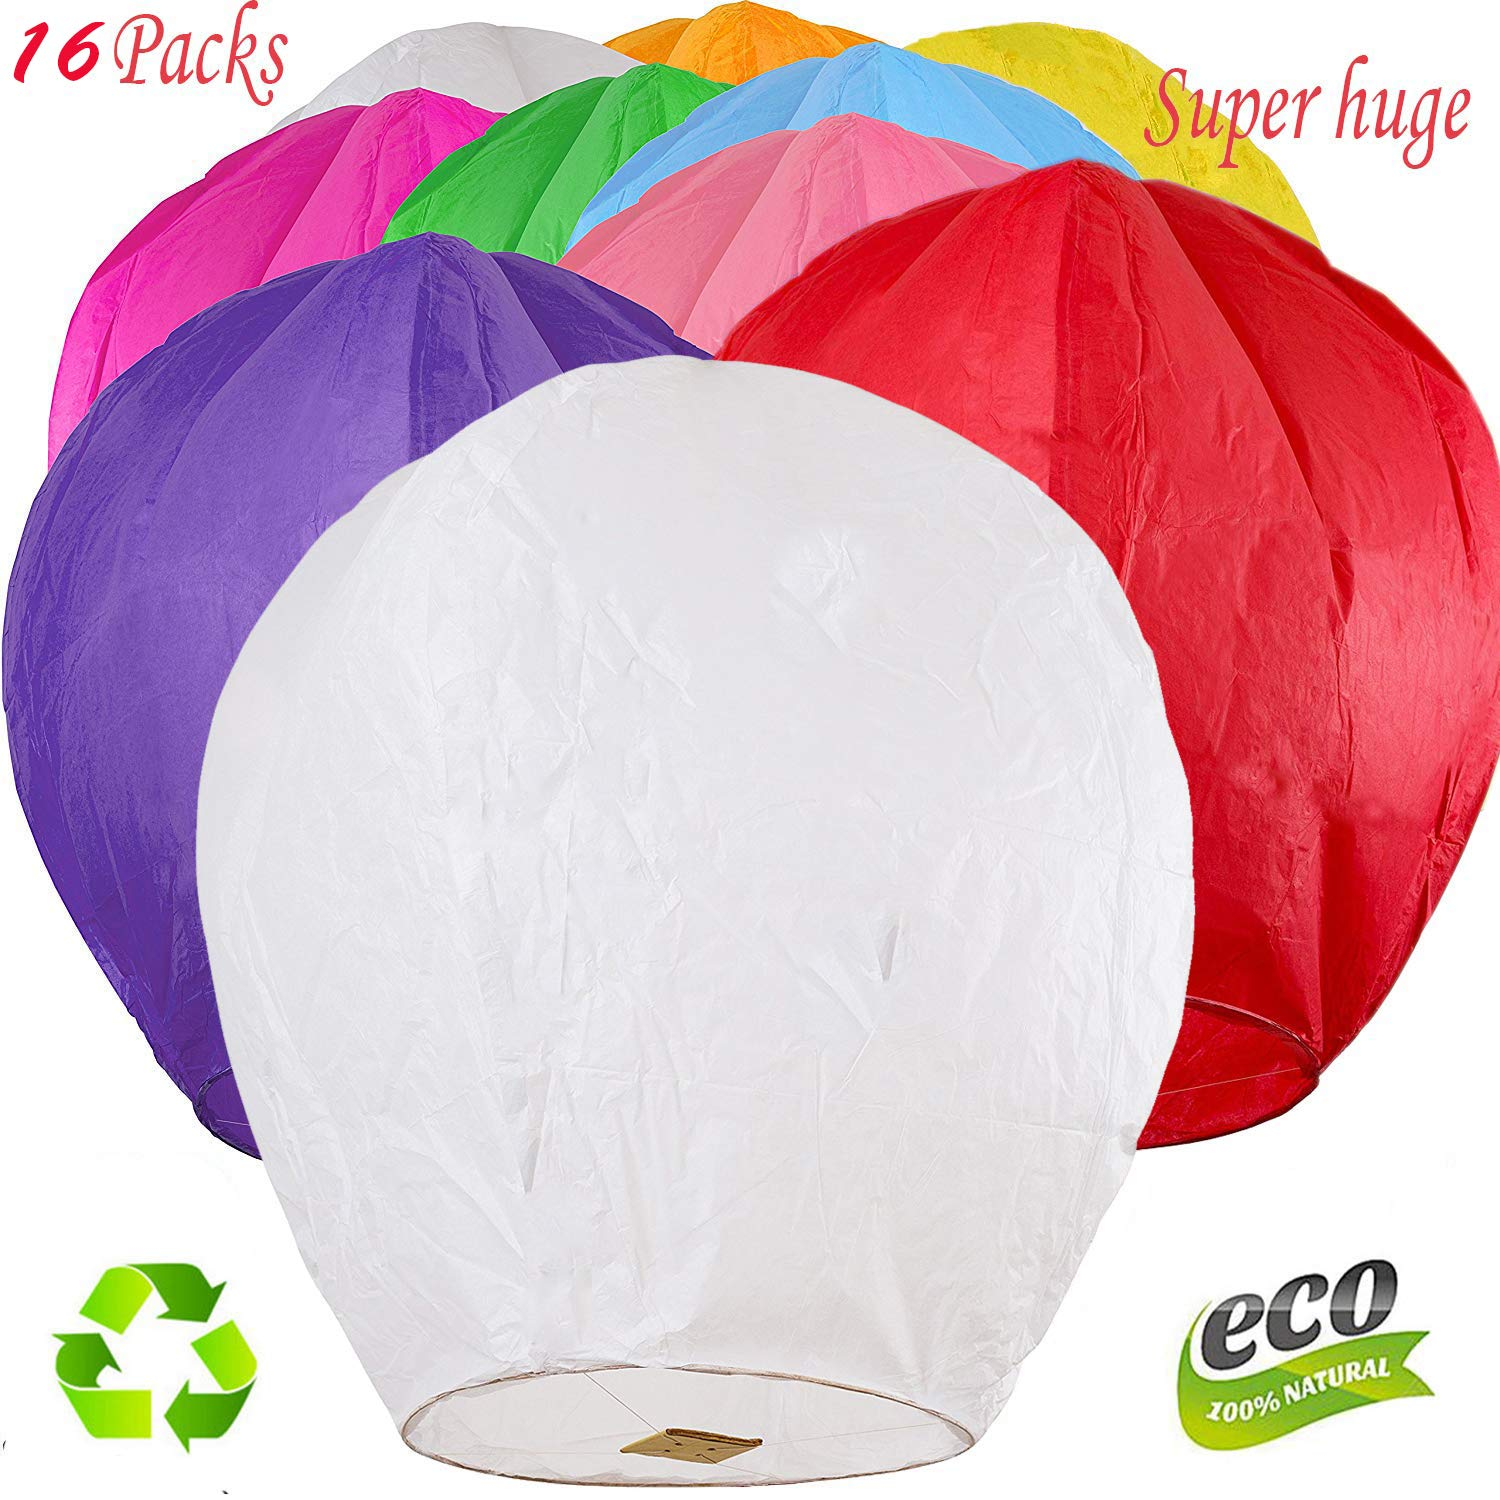 Nuluphu 100% ECO Biodegradable Flying Chinese Sky Lanterns, No Assembly Required(no Metal Wires) Mix Wish Lights (Pack of 16) (Huge) by Nuluphu